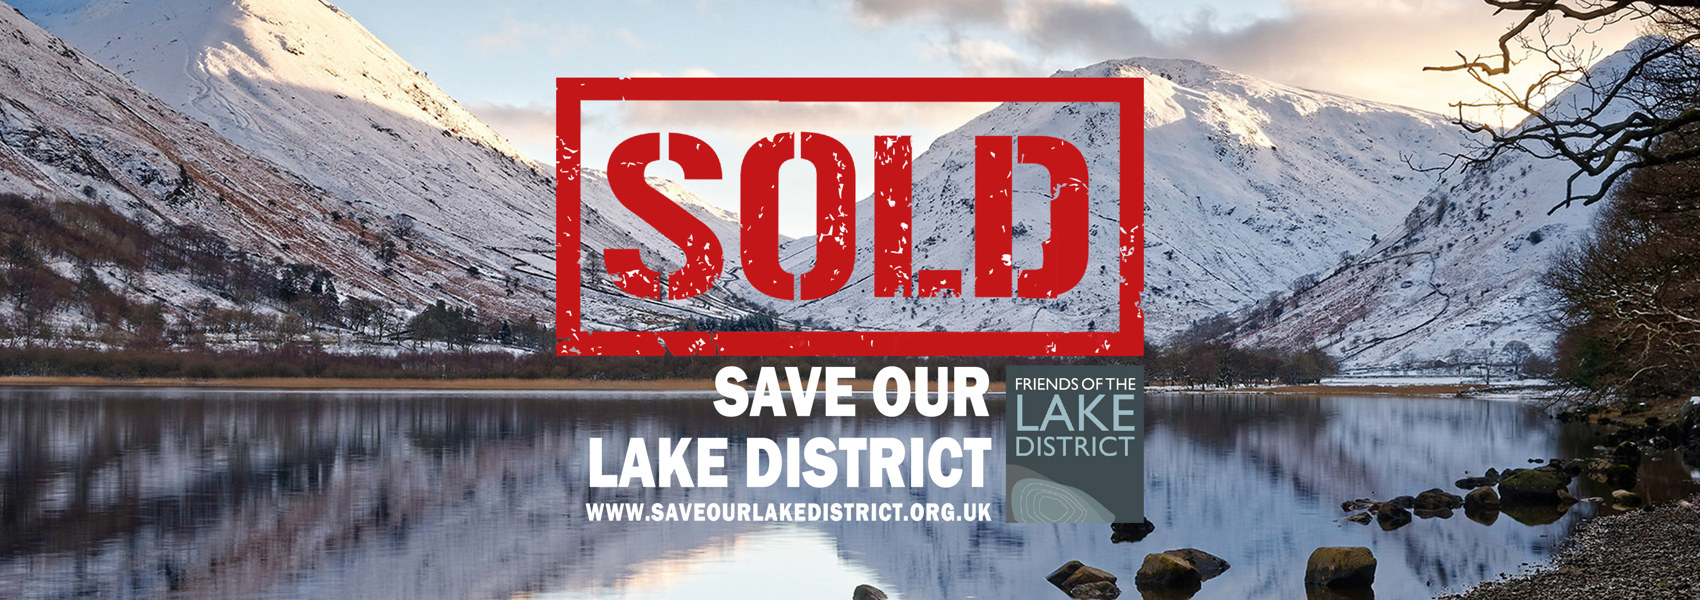 Save Our Lake District appeal